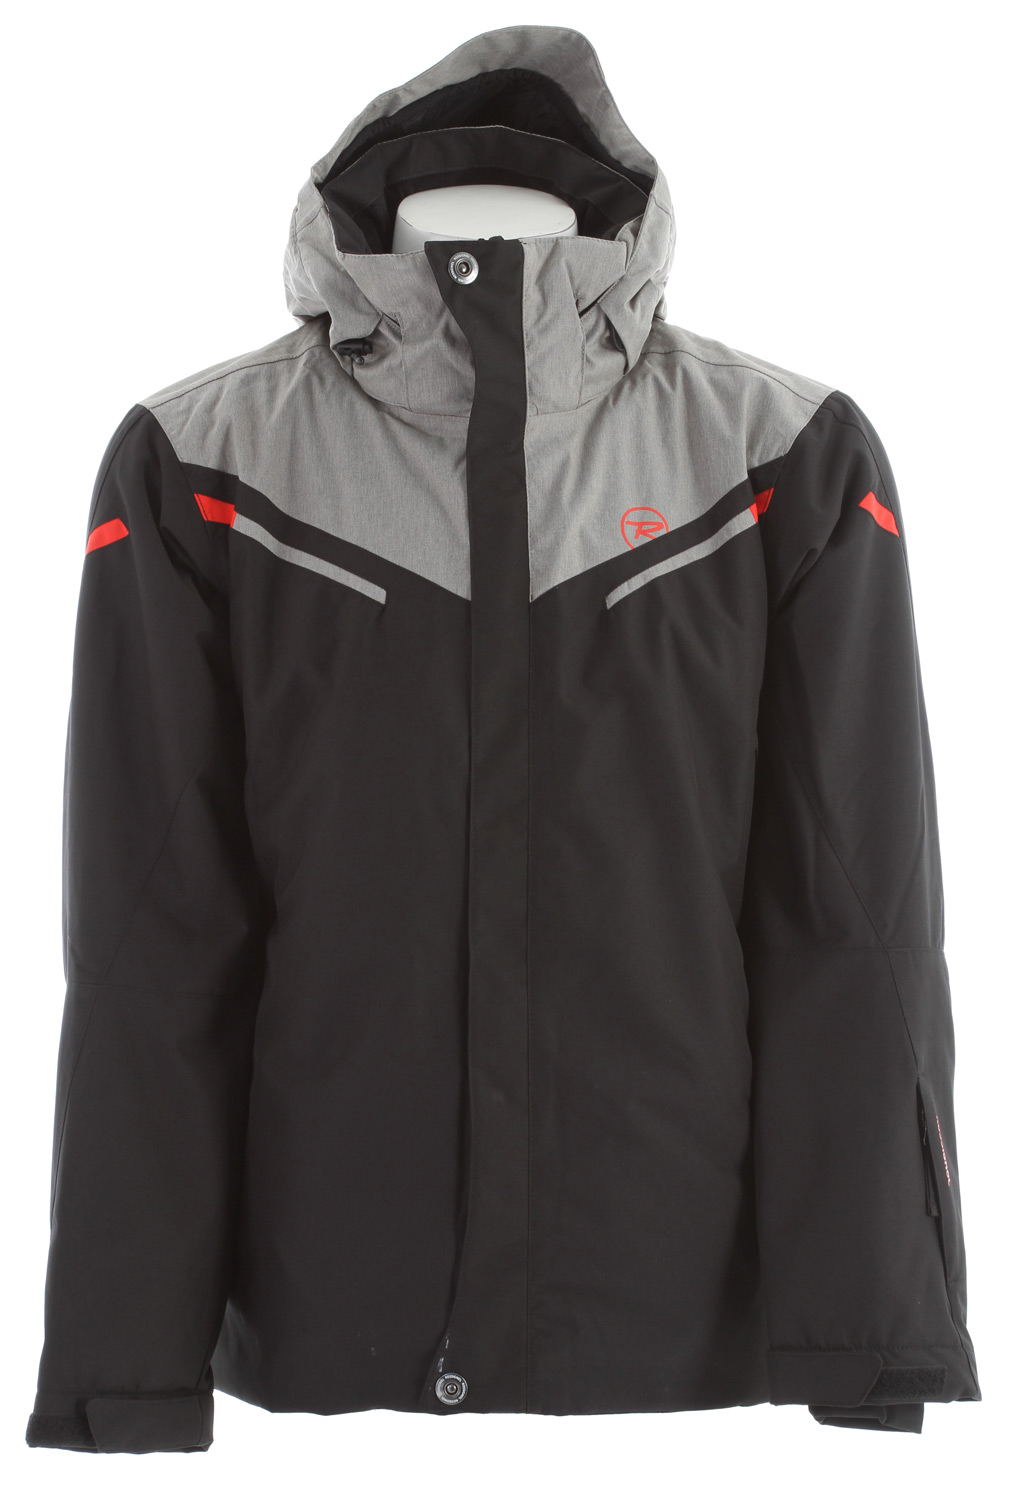 Ski Key Features of the Rossignol Ride Ski Jacket: 10,000mm Waterproof 10,000g Breathability 100% polyester Weight: 158g/m2 Finish: Lamination 2L DWR Lining: Body 80g/Sleeves 60g - Polyester Removable hood Fixed powder skirt with snaps adjustment Lycra cuffs Vent zip on side Elastic cord on bottom Stored pockets Key holder Goggle wiper Ski pass pocket - $216.95